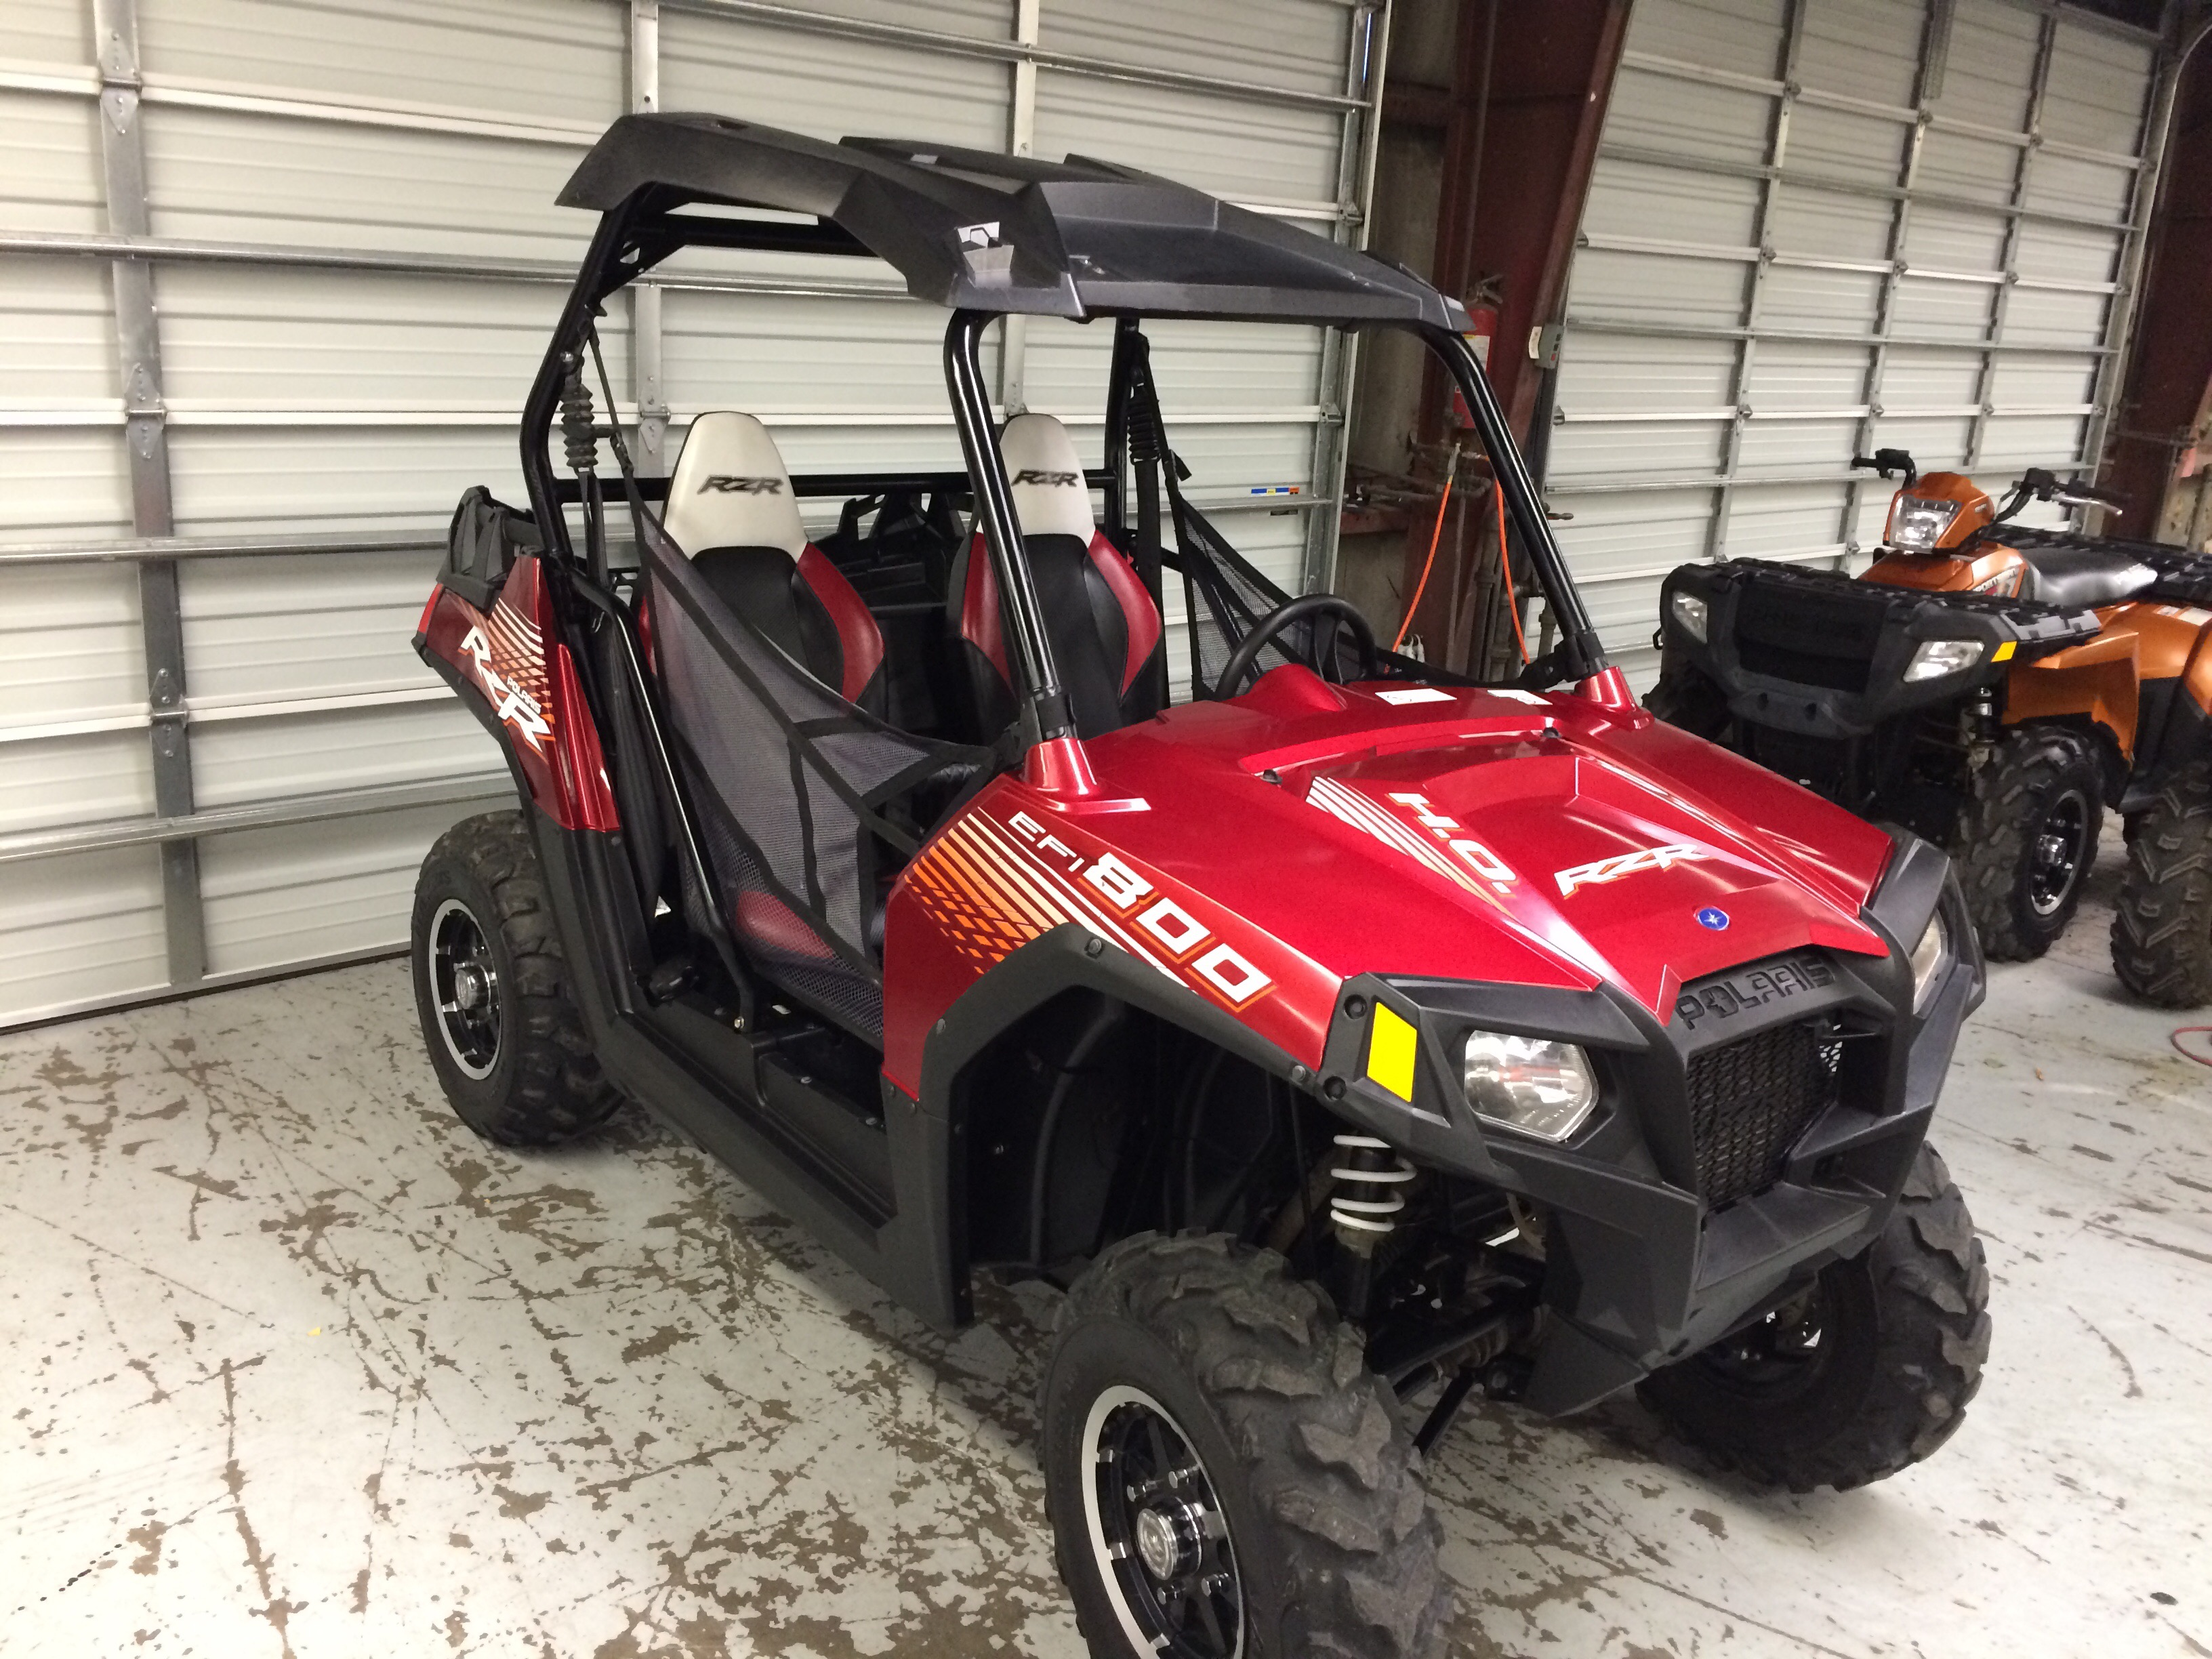 SOLD  2013 Polaris Rzr 800 LE 1900 miles  Excellent